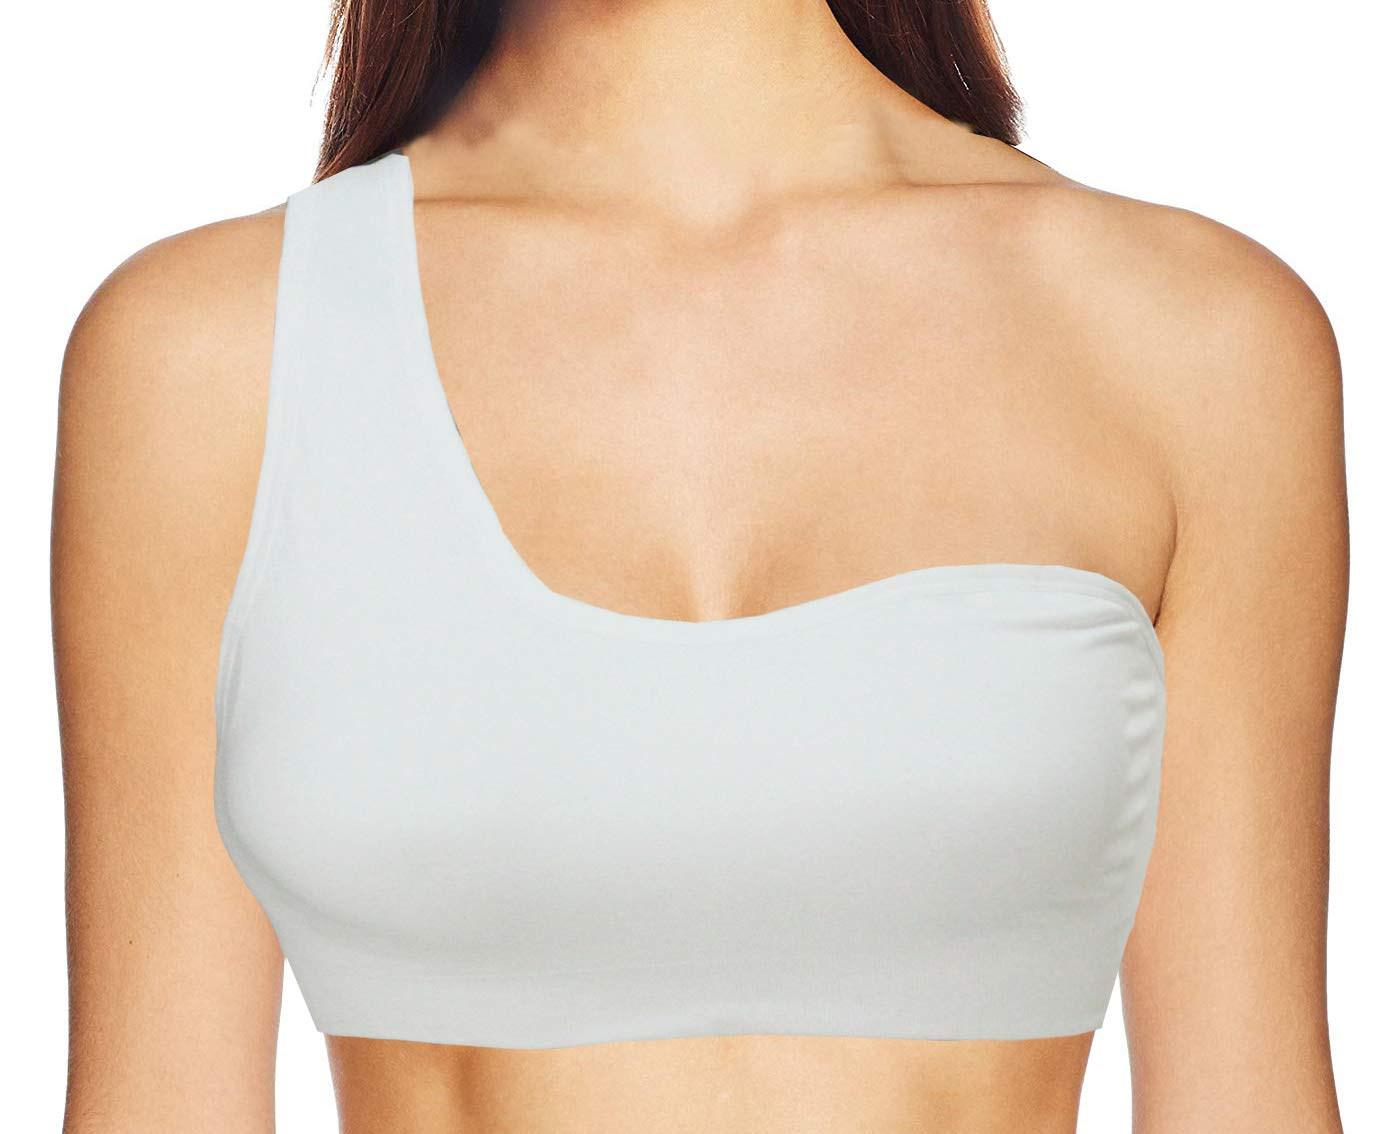 AKAMC Women's Removable Padded Sports Bras Medium Support Workout Yoga Bra 3 Pack Style-KD01,Small